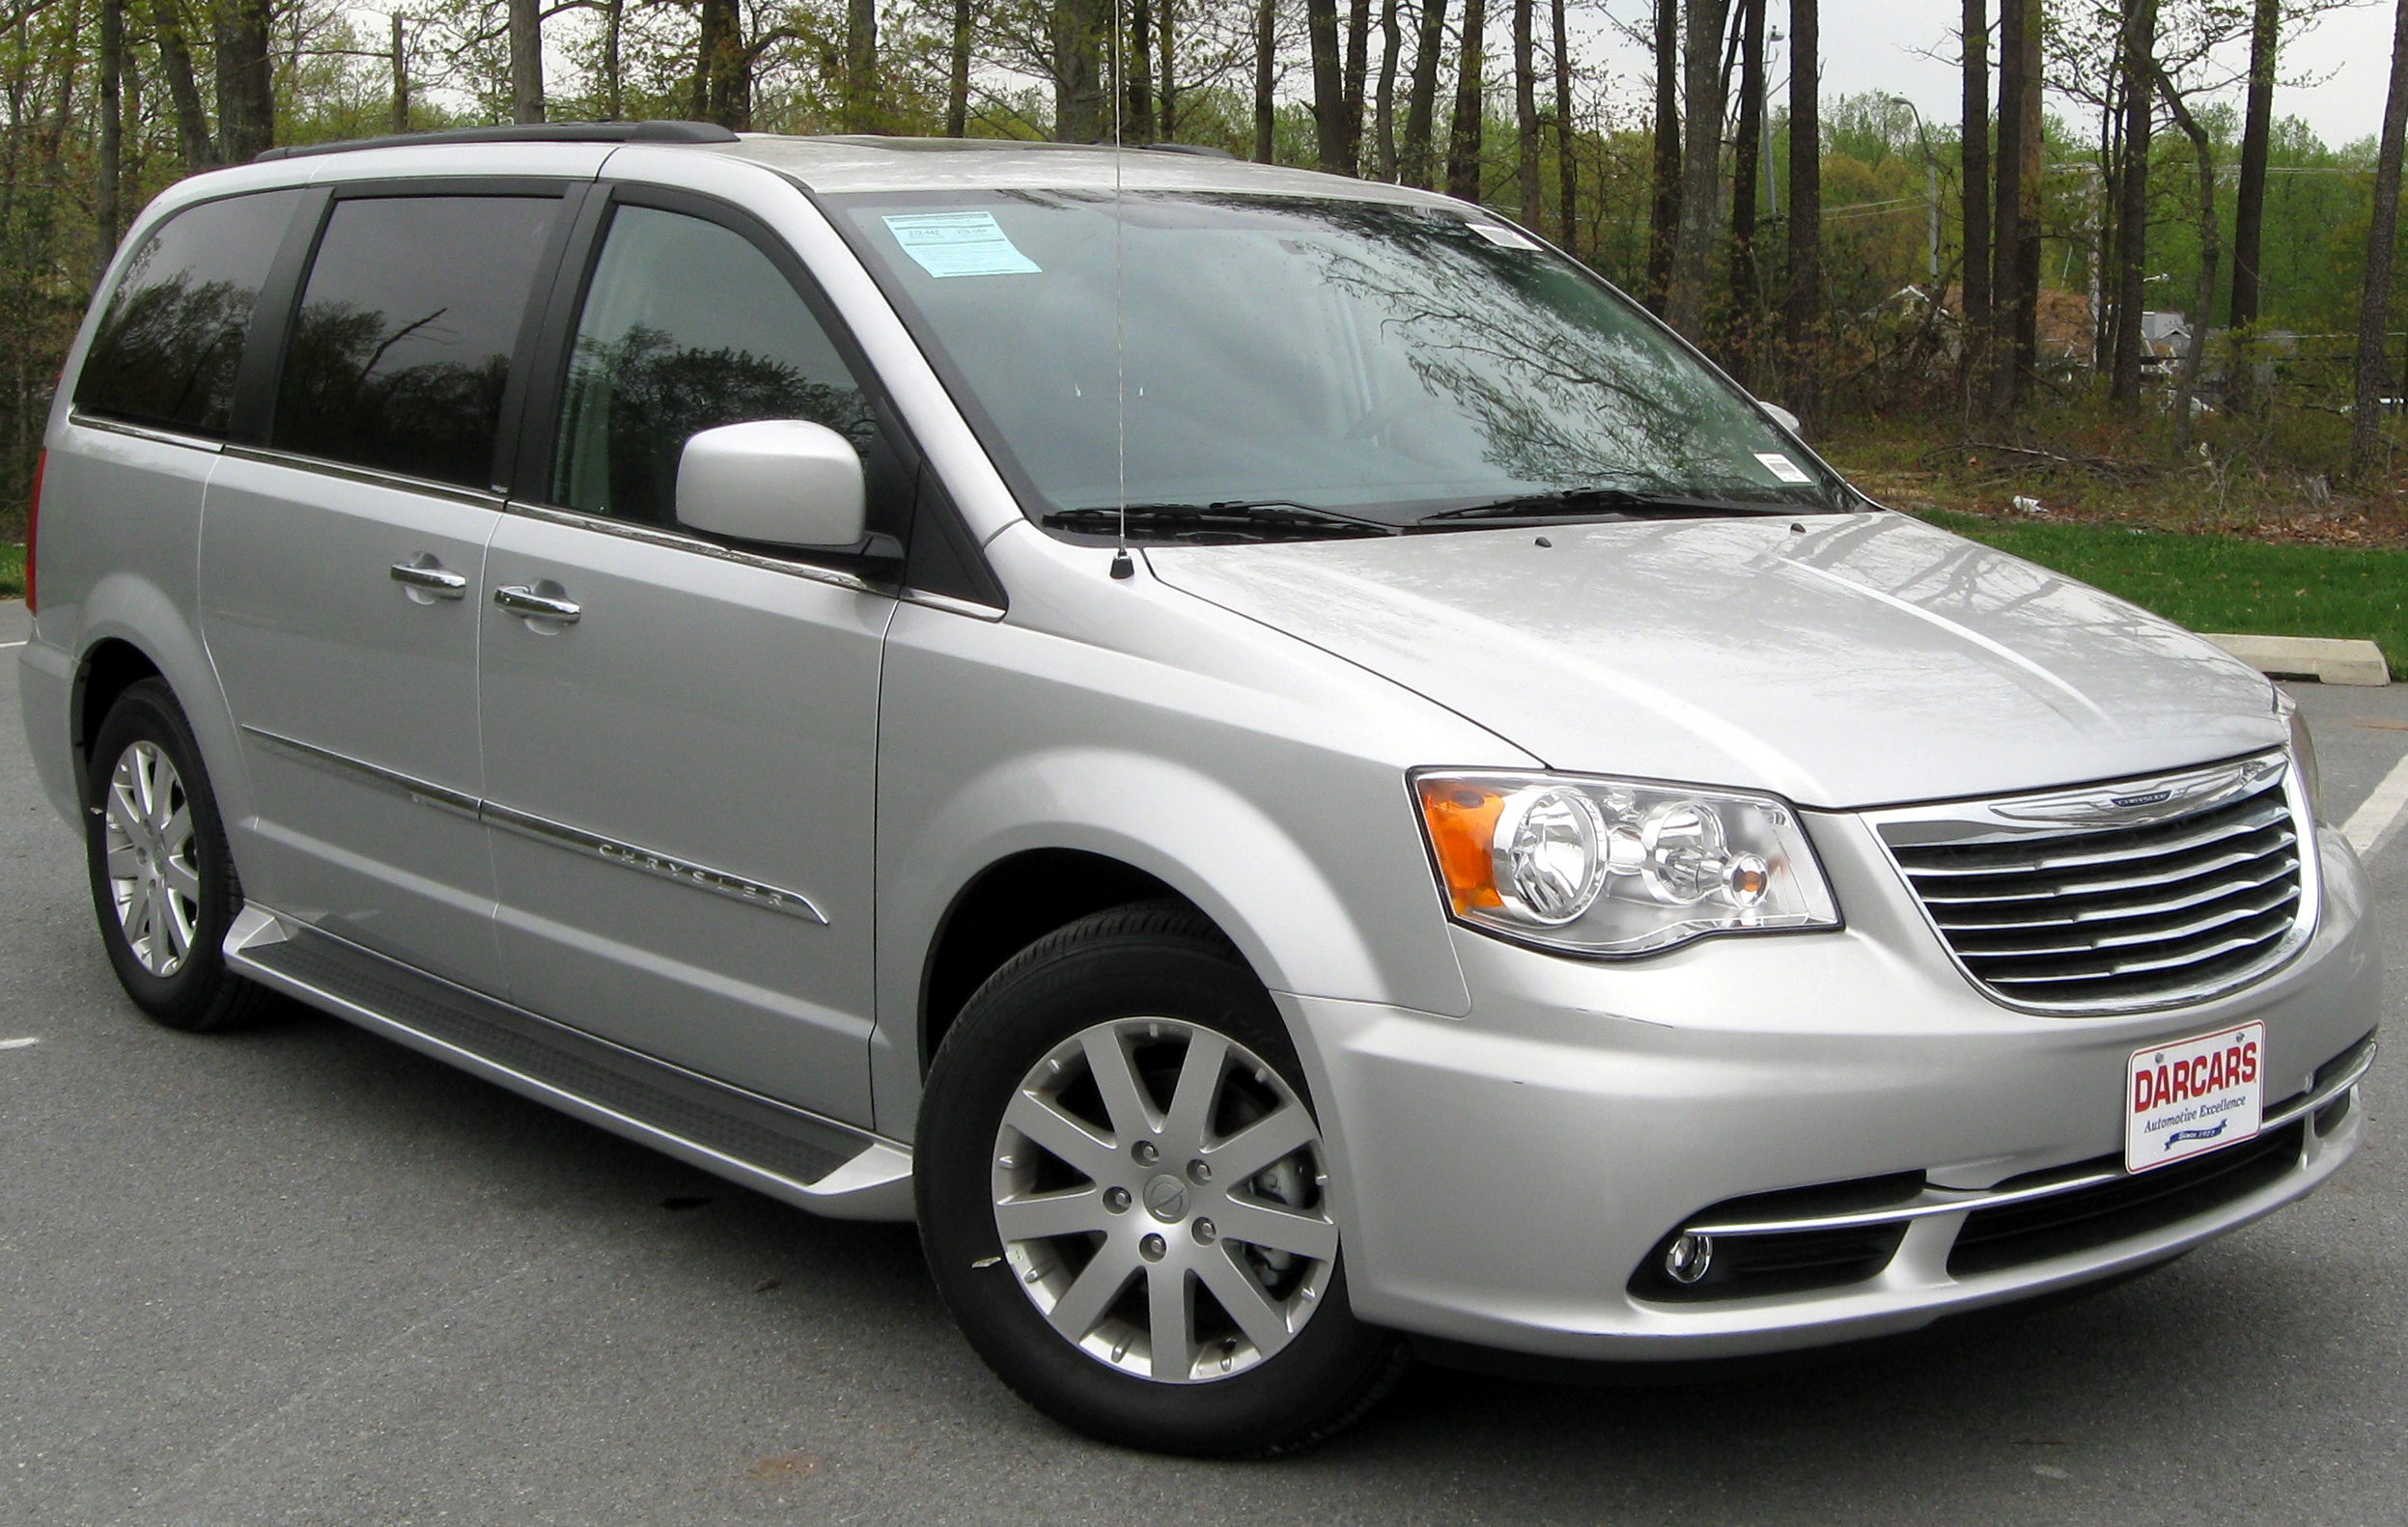 Value of 2007 chrysler town and country van